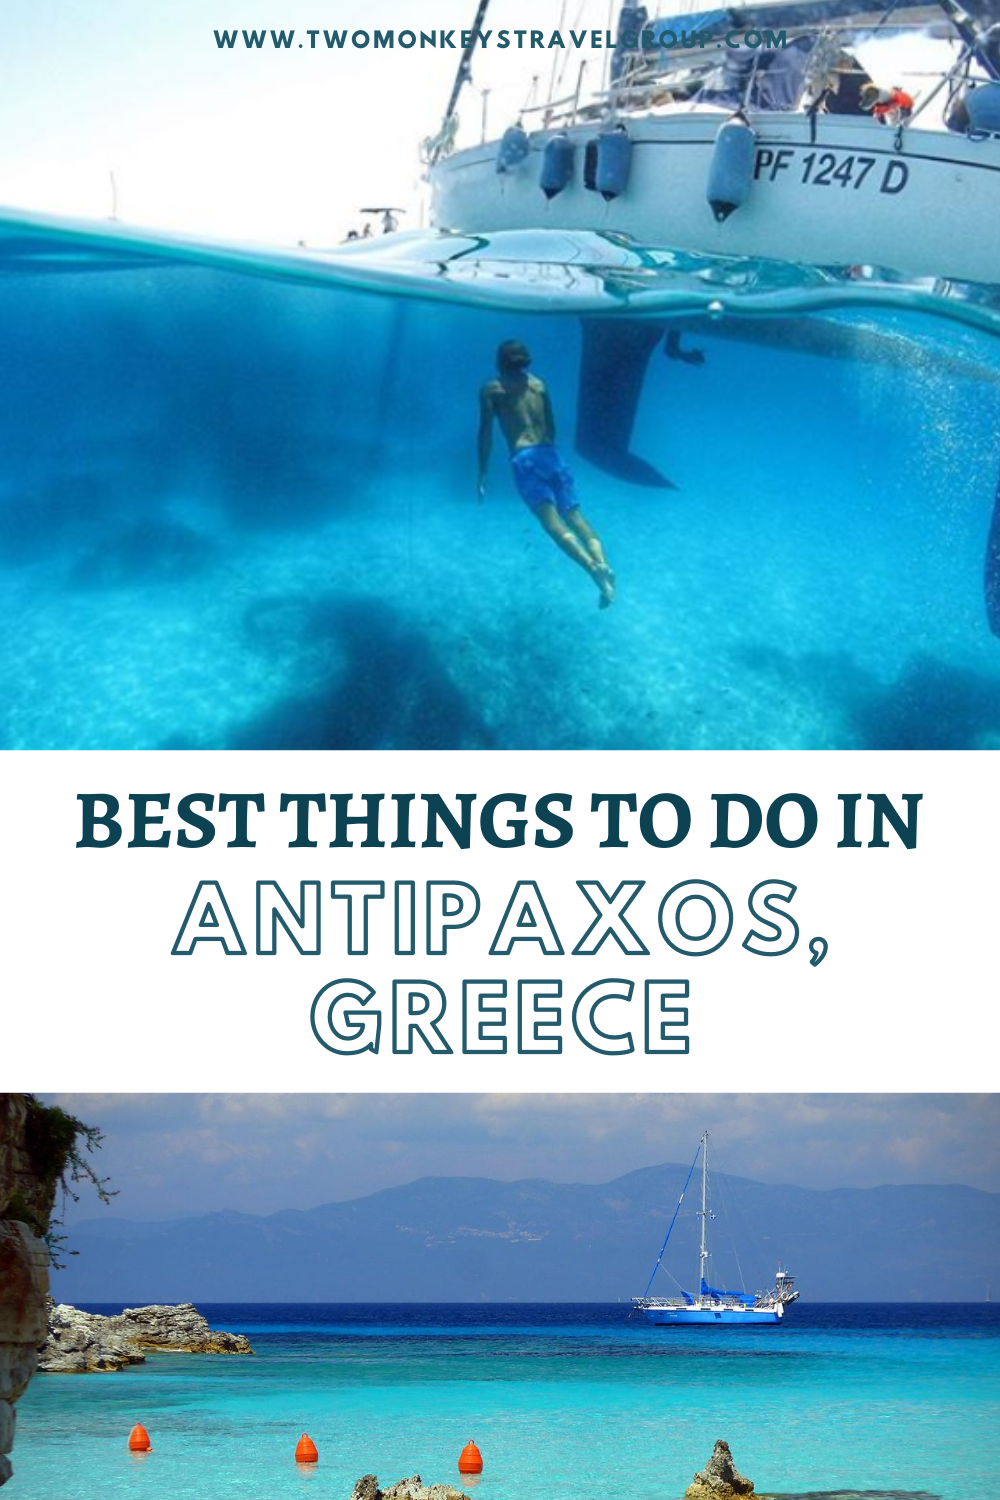 5 Best Things to do in Antipaxos, Greece [with Suggested Tours]